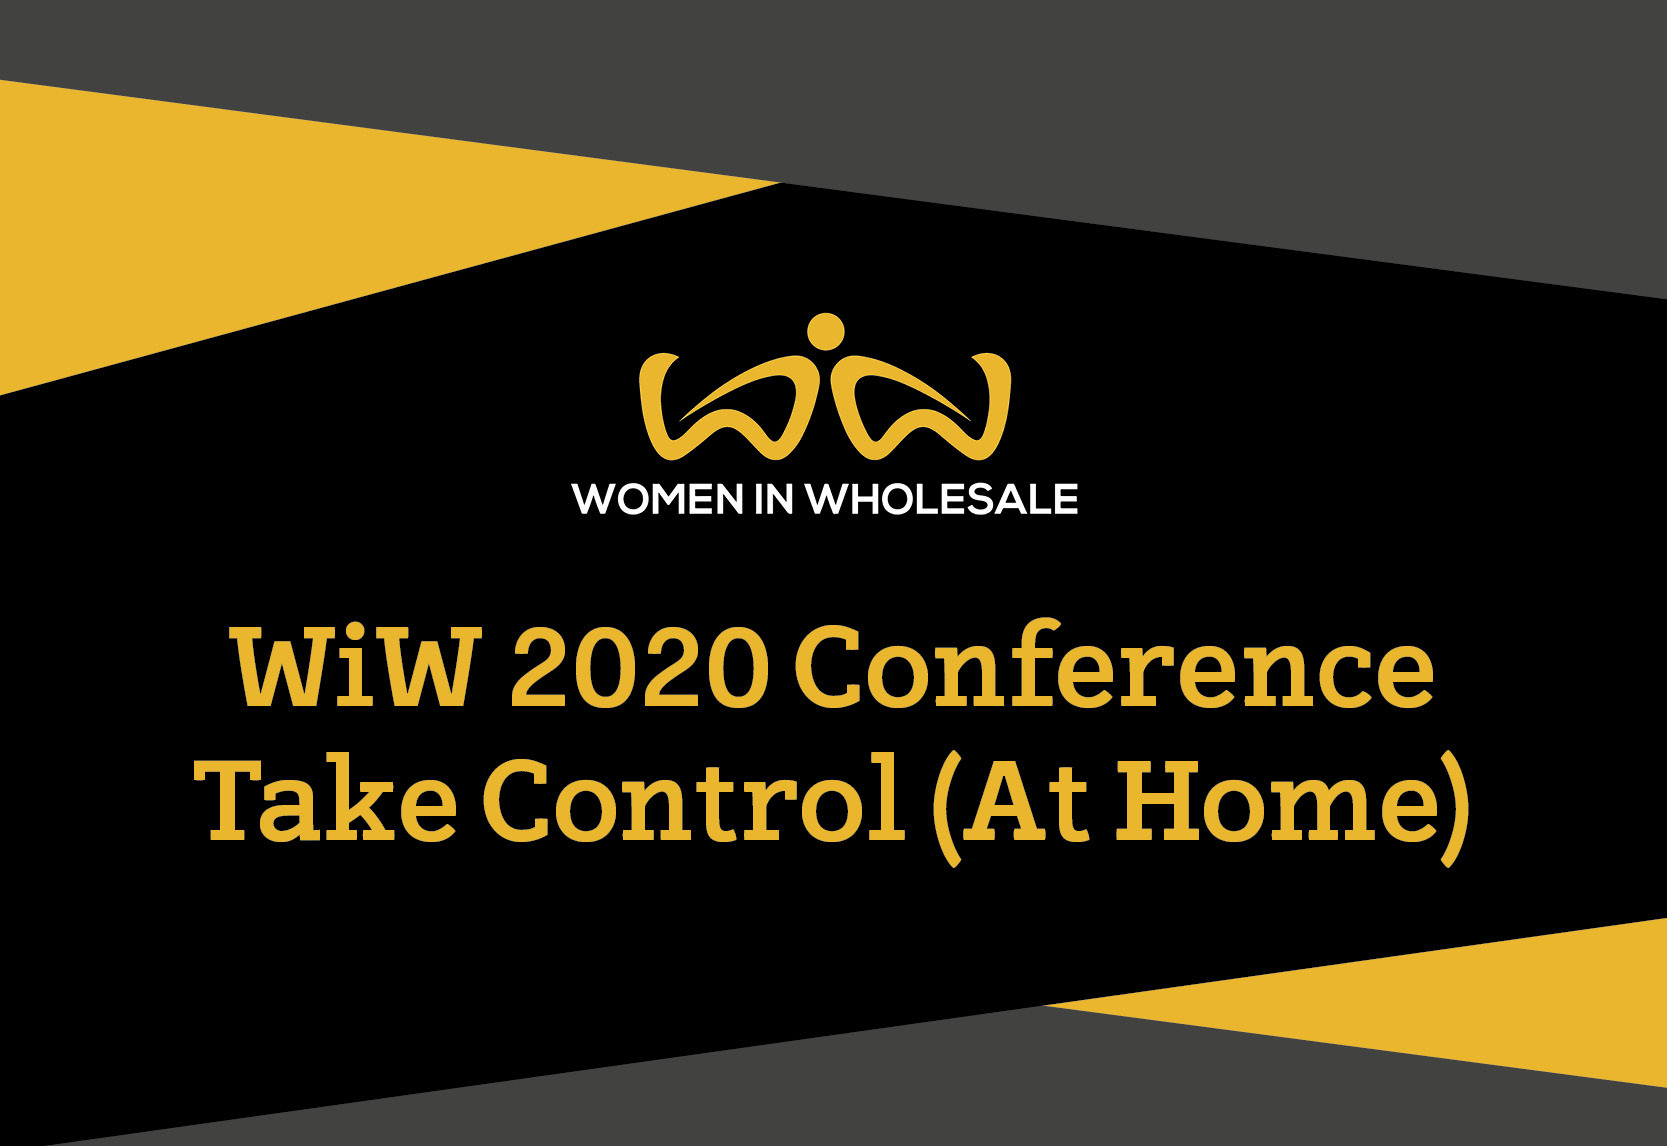 Women in Wholesale conference